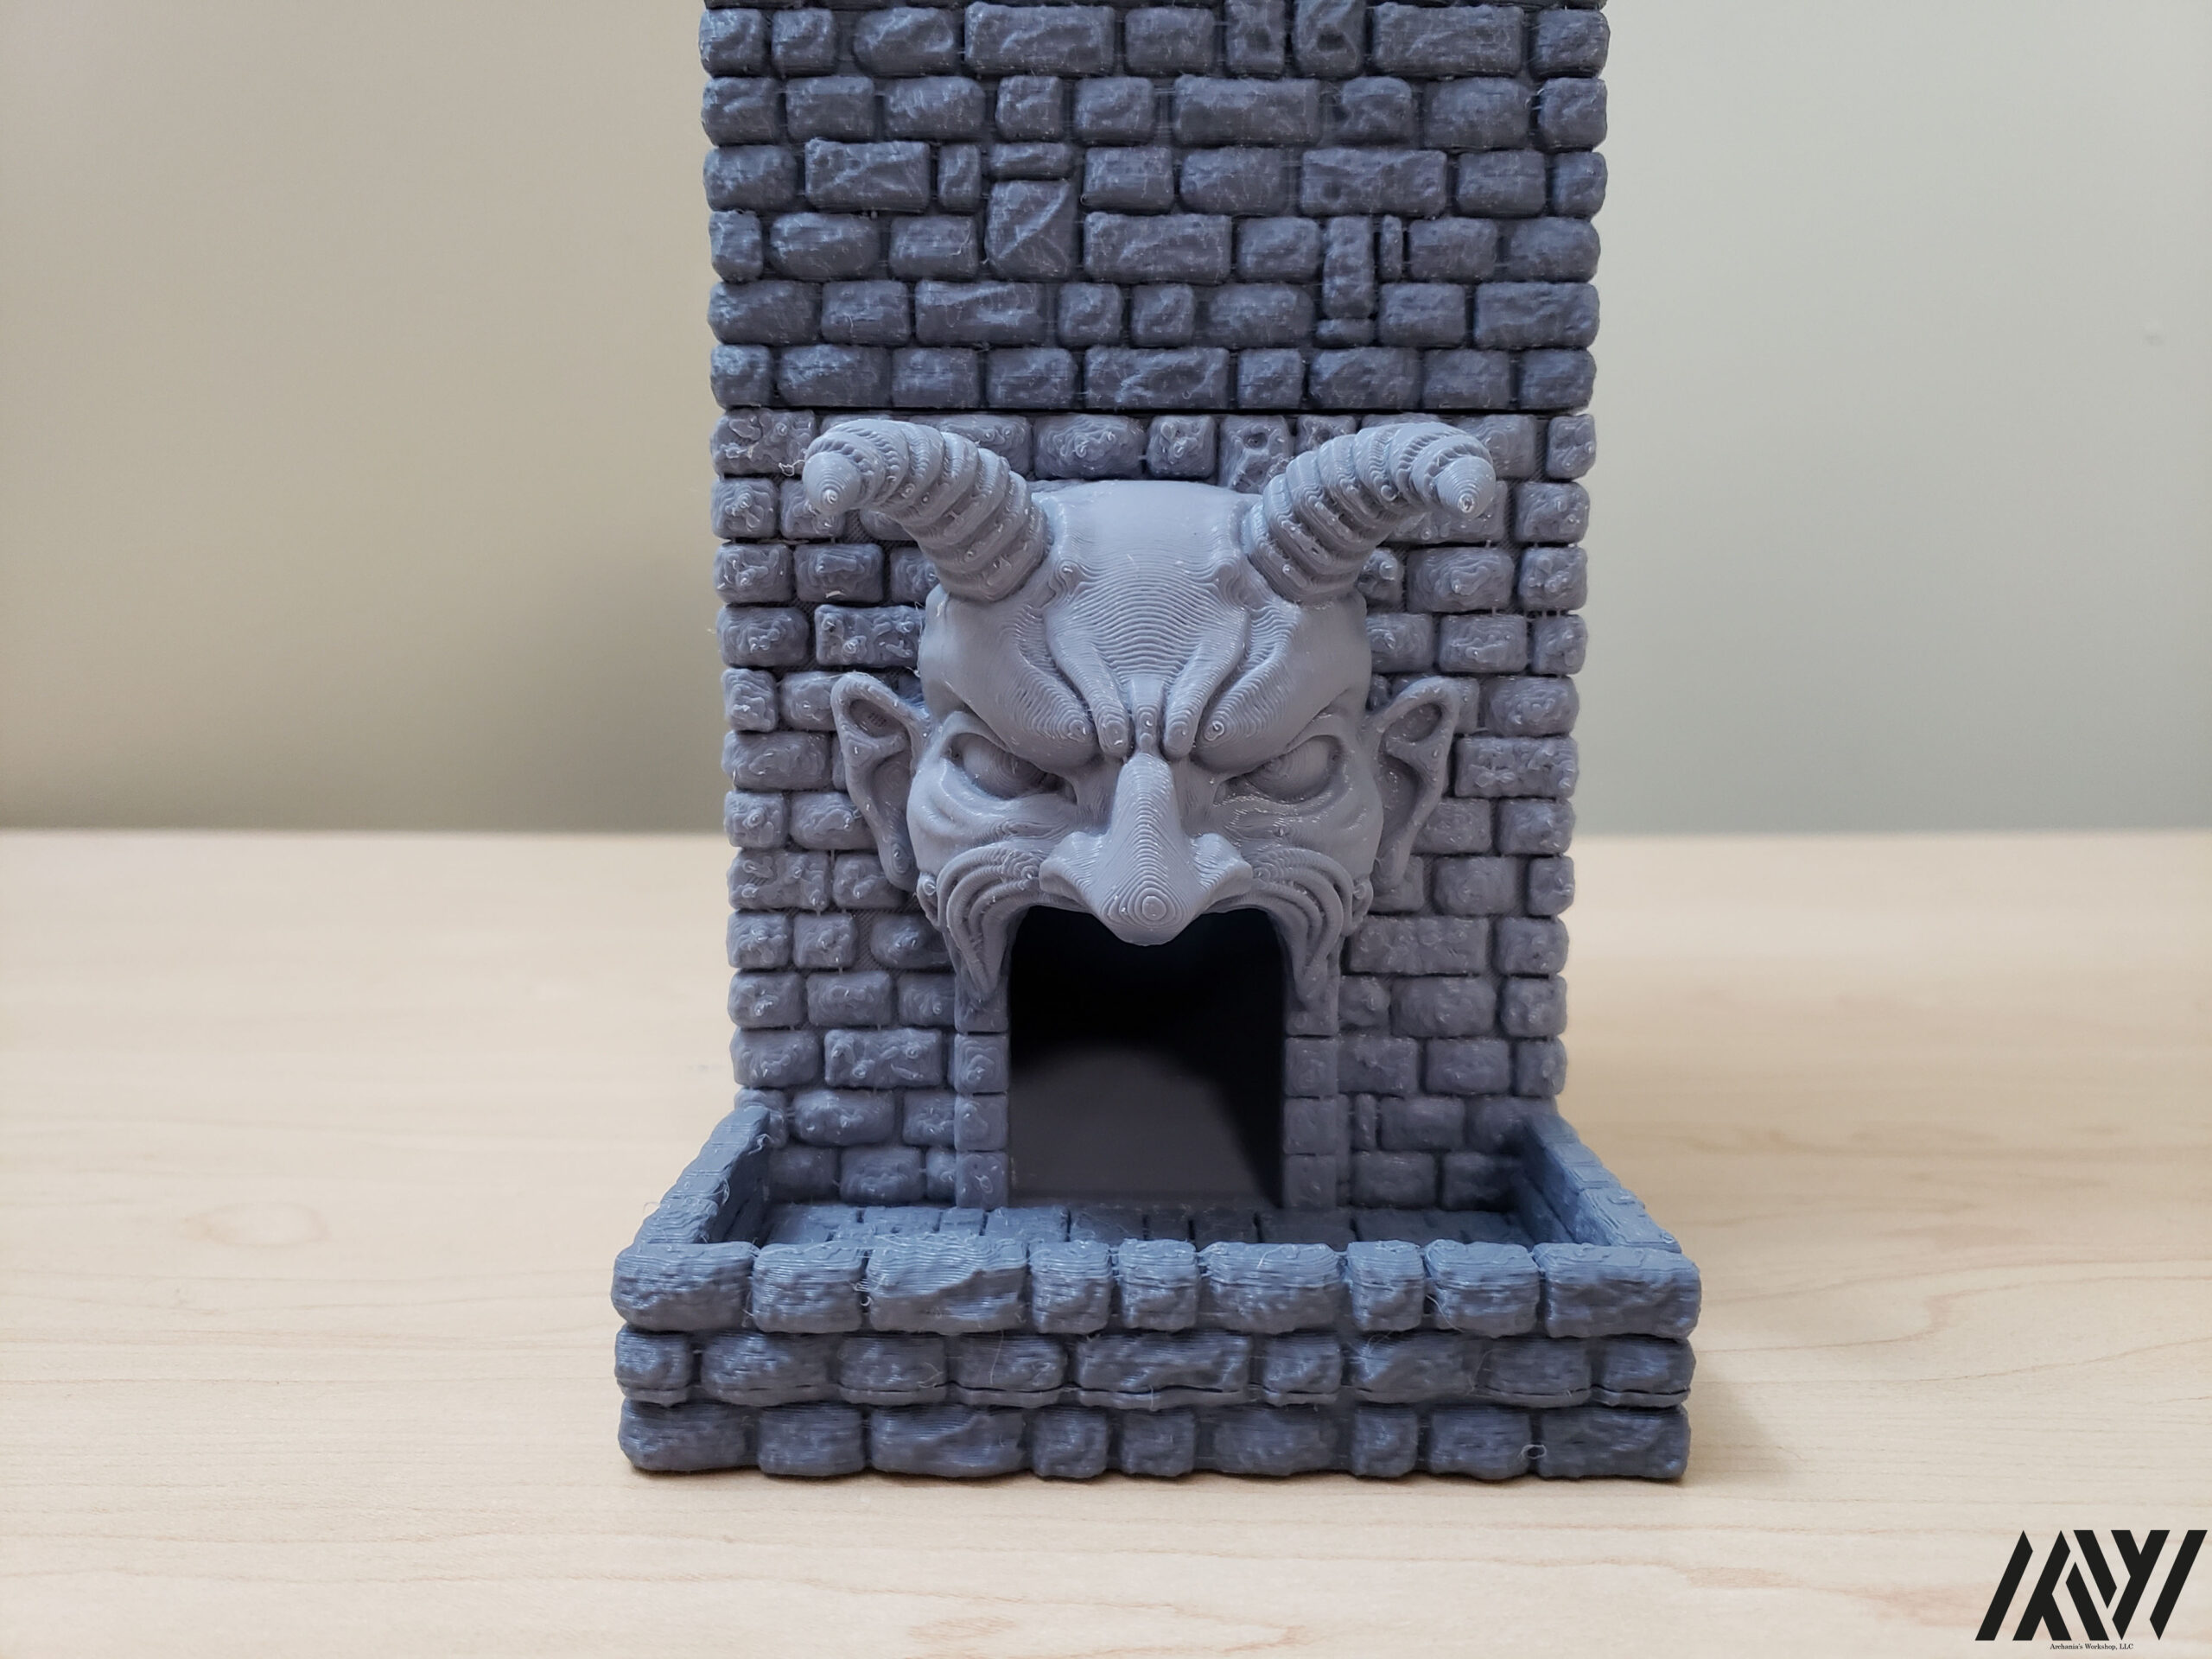 Demon Faced Dice Tower